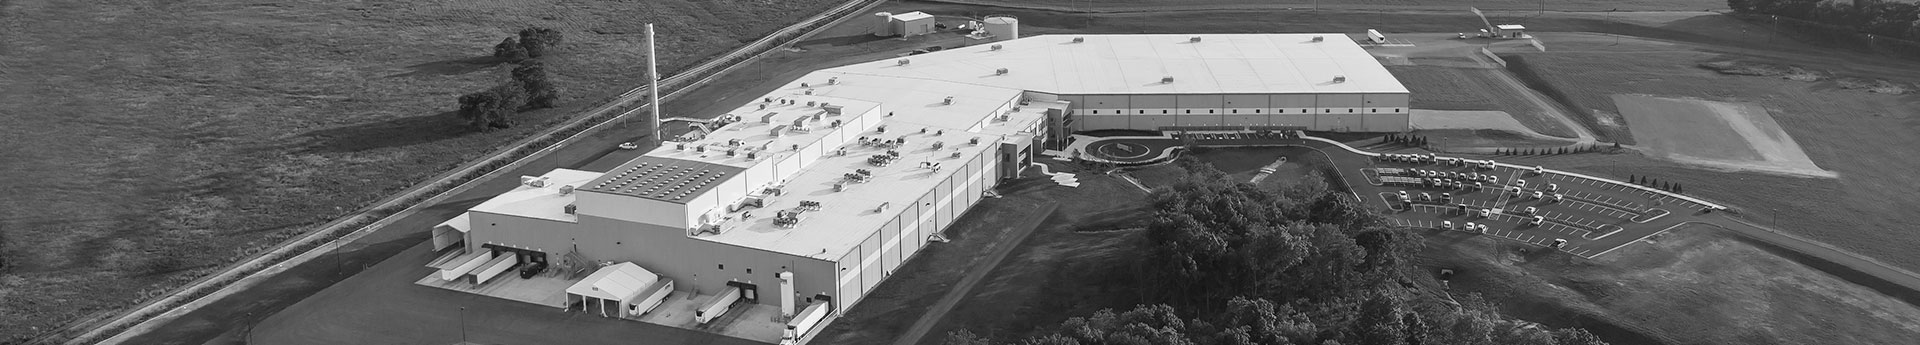 Aerial photography of Dogstar Kitchens - Award-winning DogStar Kitchens, Auburn, Kentucky